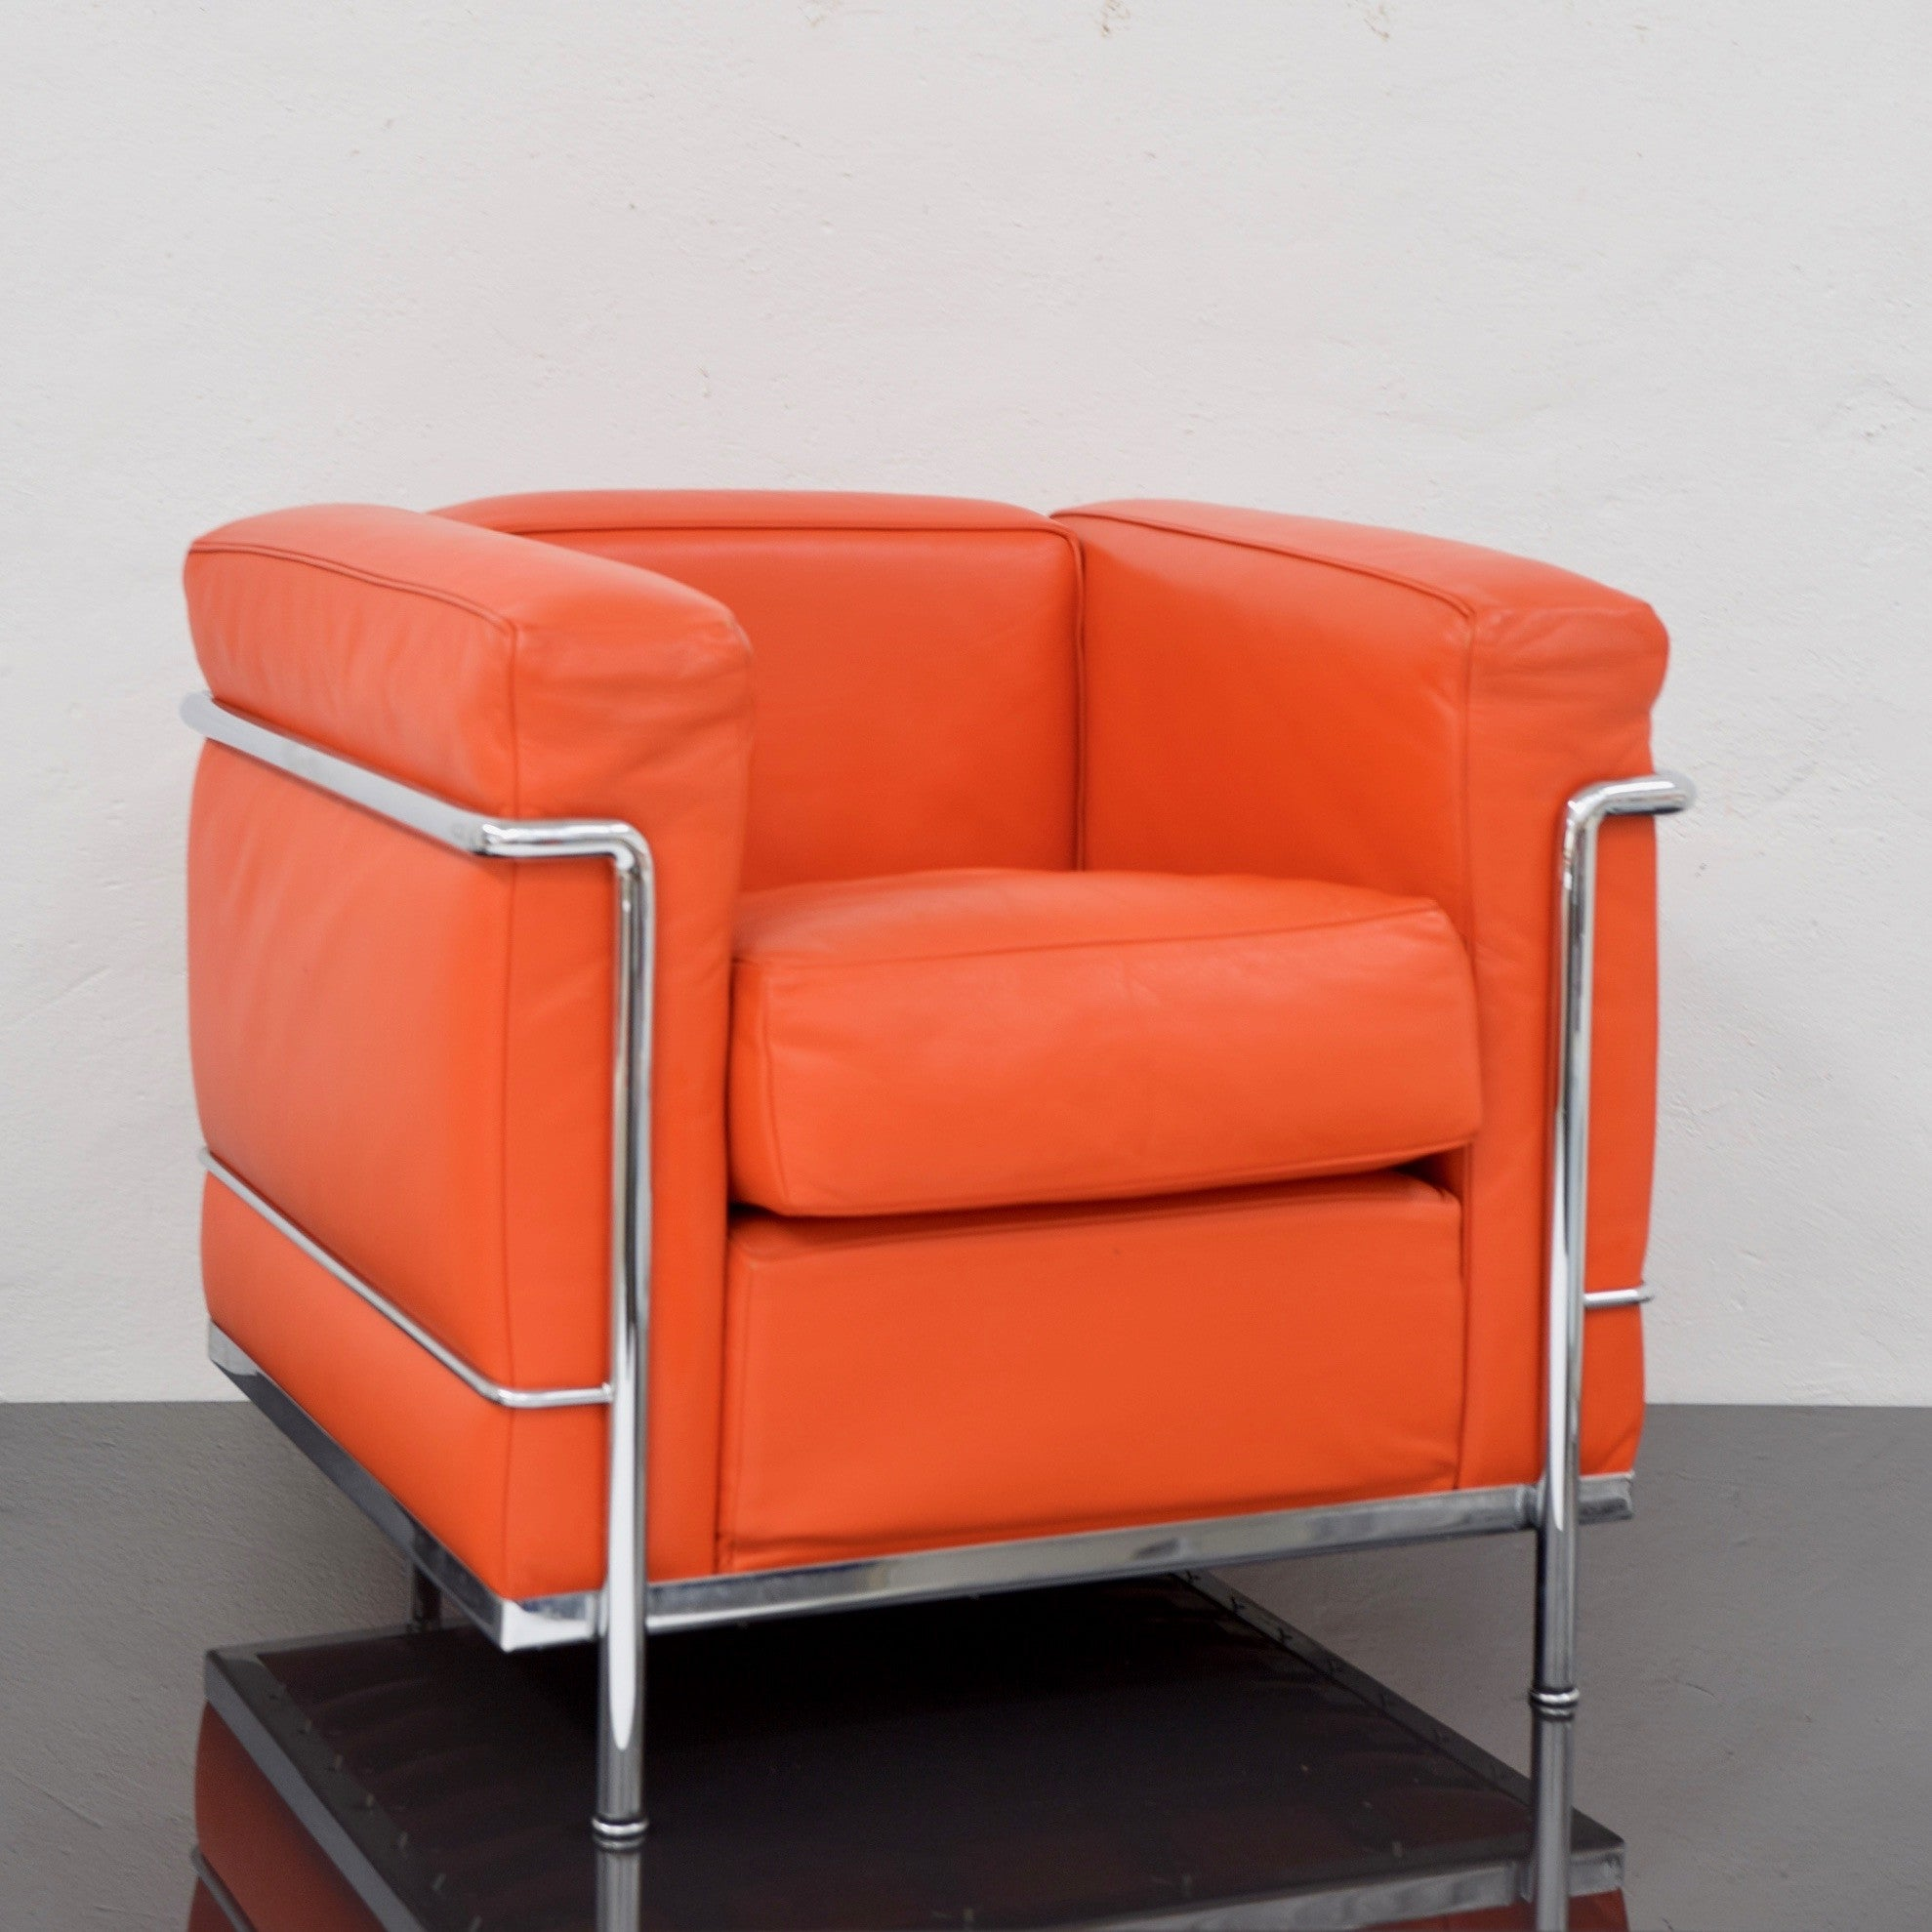 Beau LC3 Lounge Chair By Le Corbusier For Cassina (2 Available)